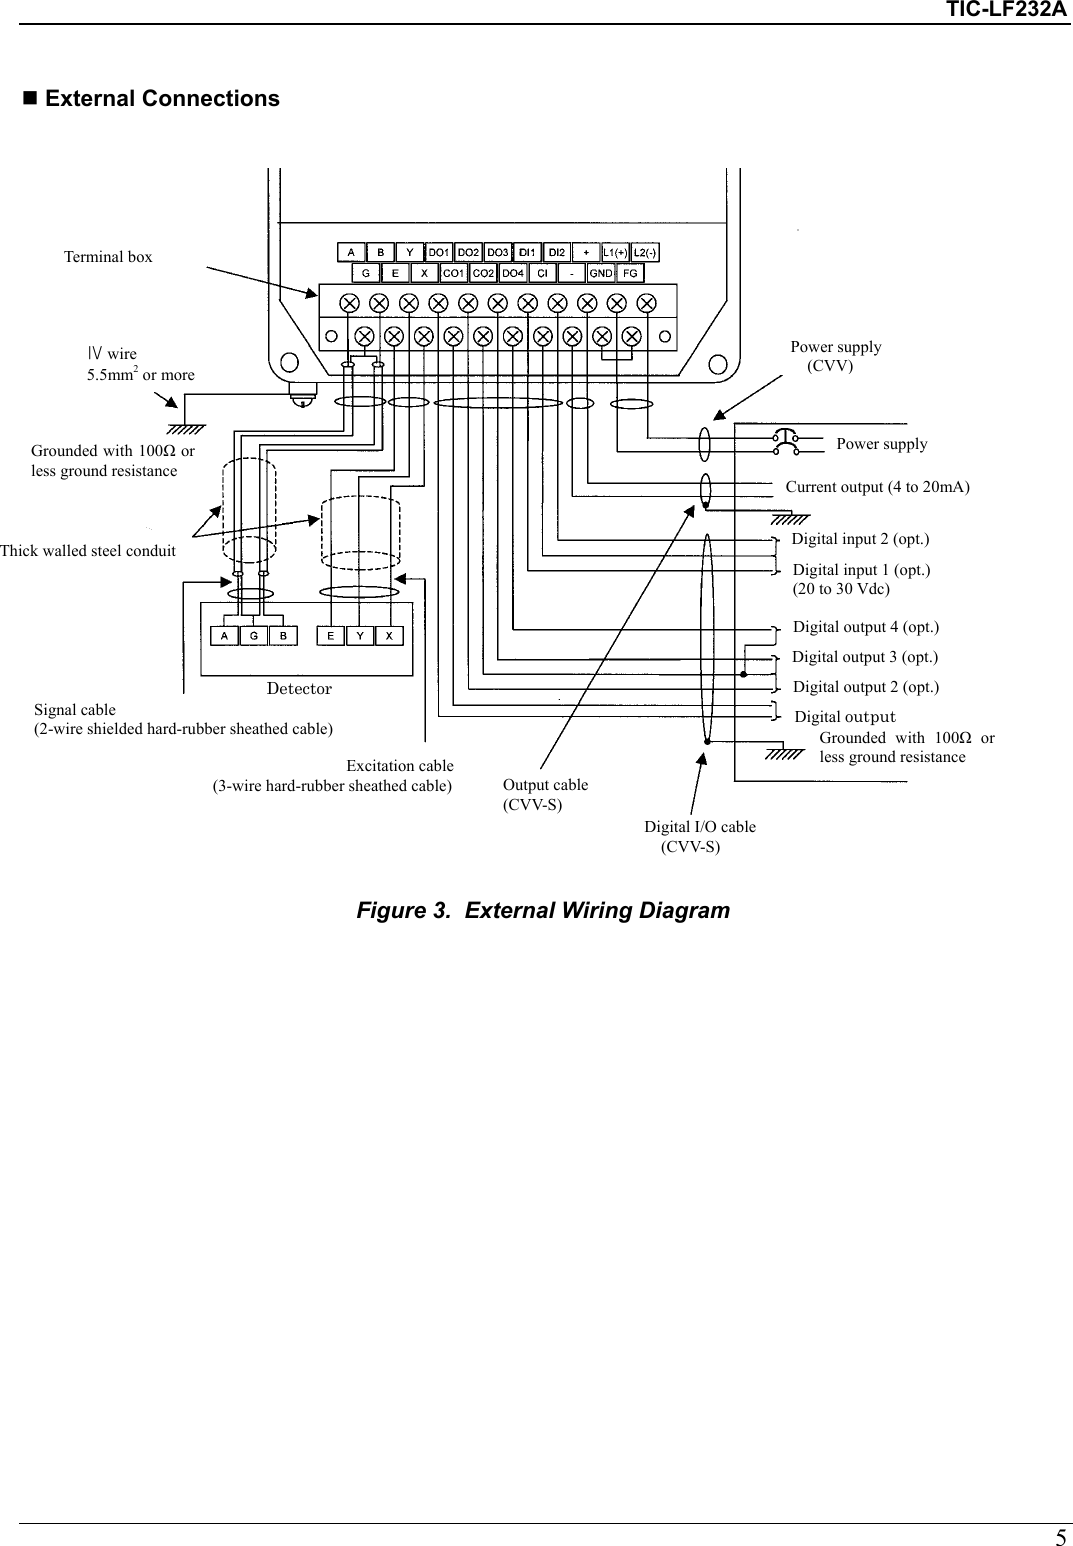 hight resolution of page 5 of 8 toshiba toshiba electromagnetic flowmeter converter tic